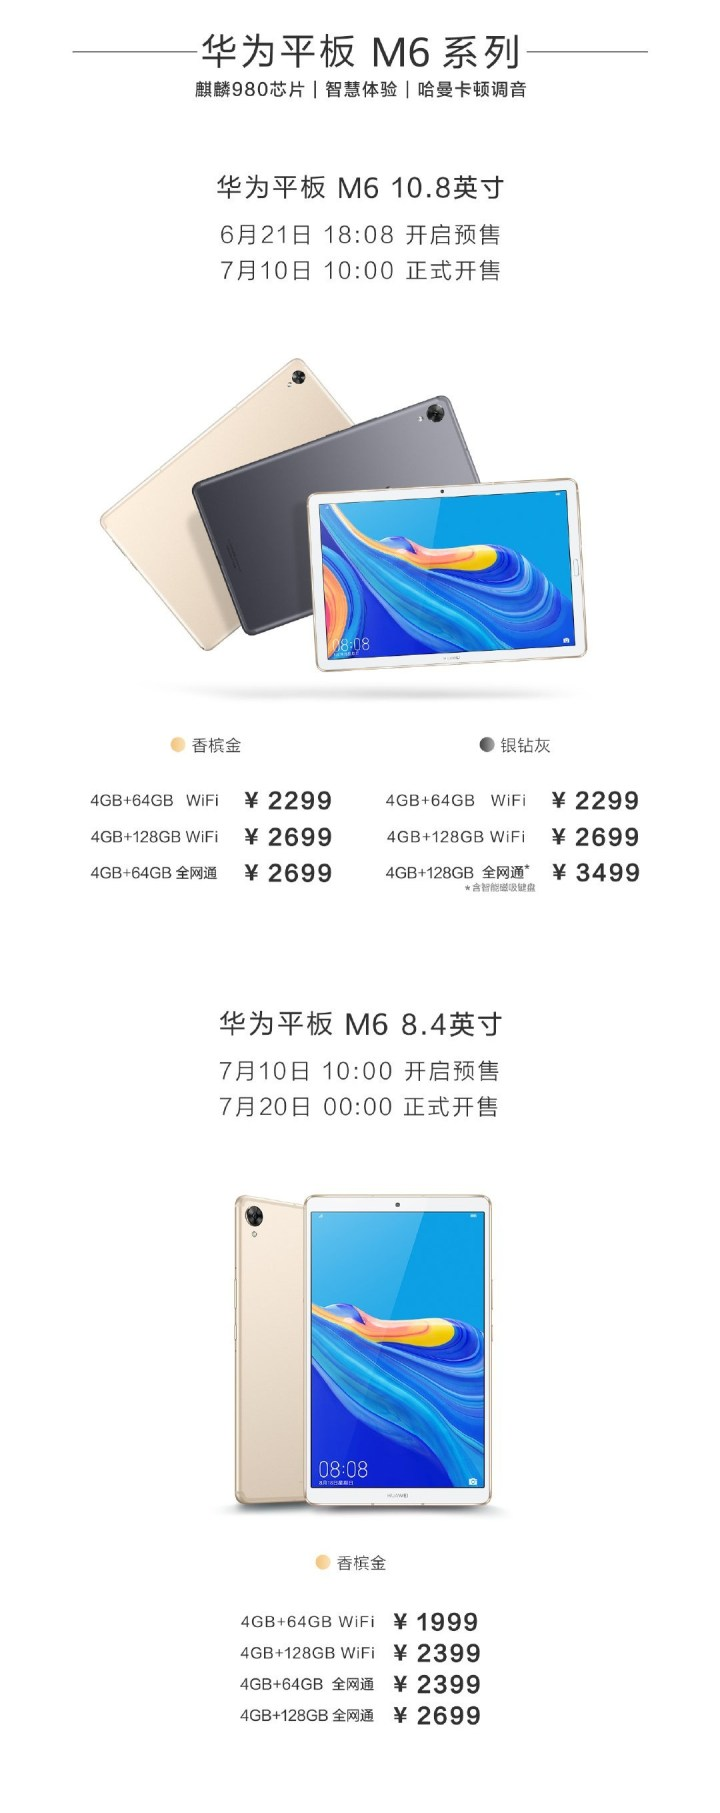 Huawei Tablet M6 Series Price